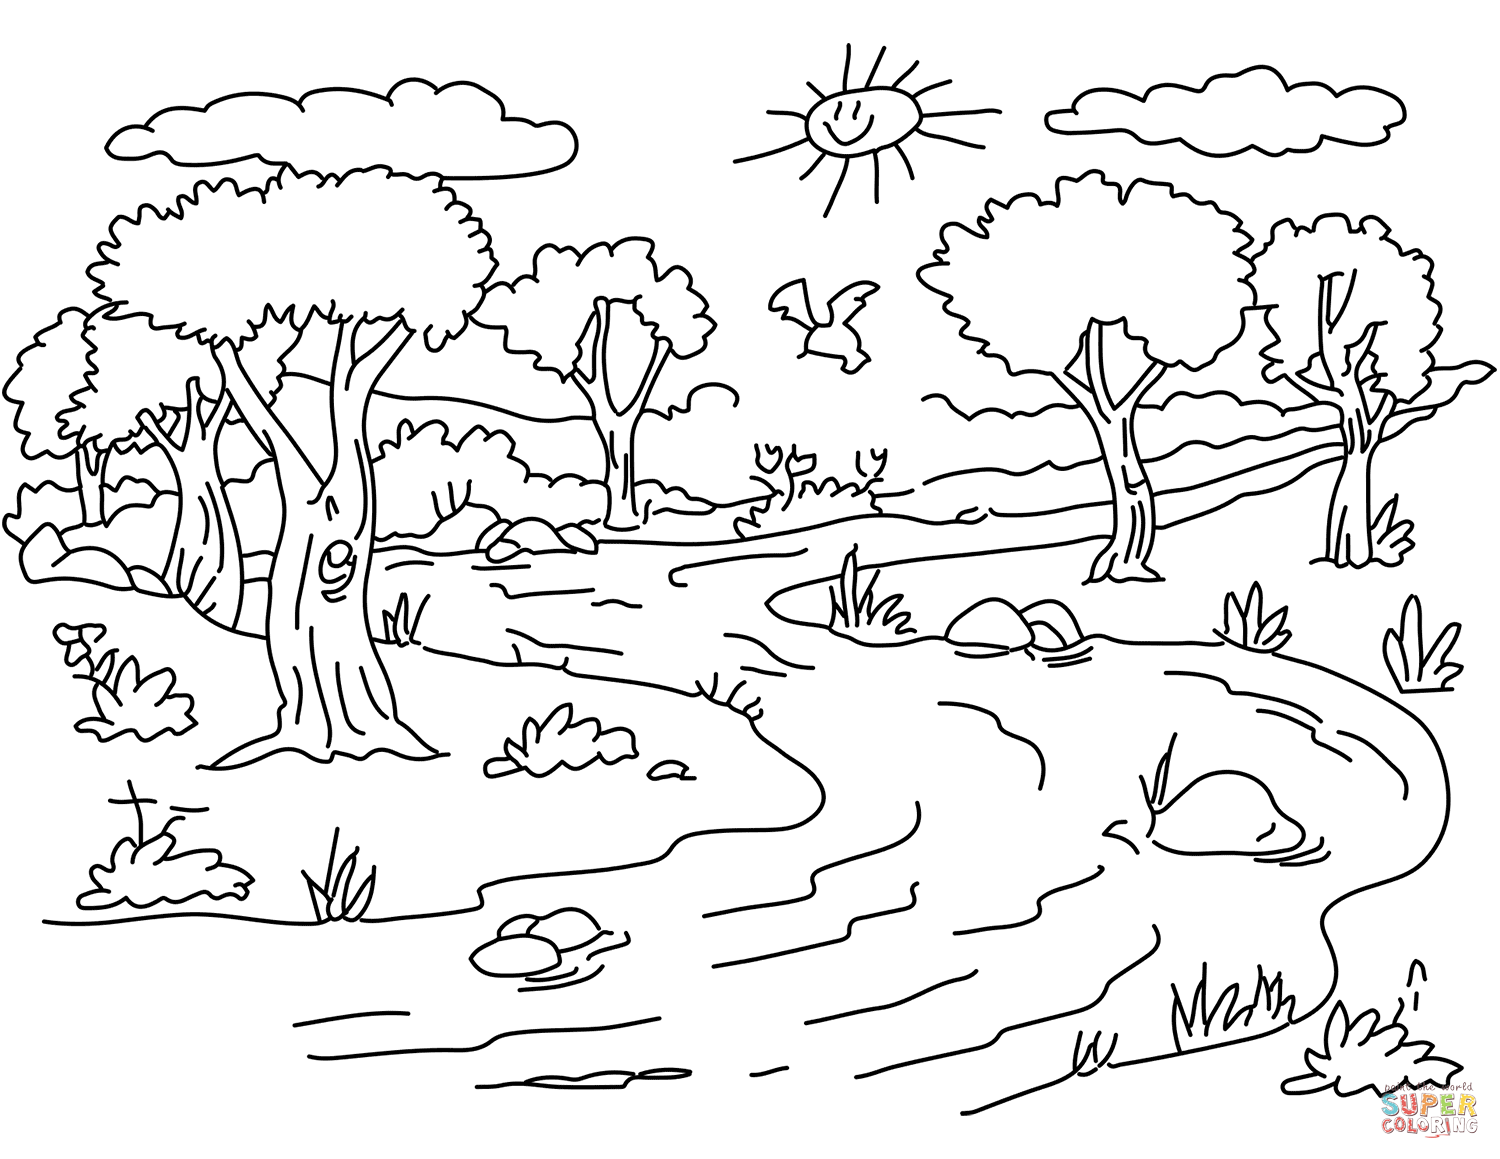 River Landscape Coloring Page From Forest Category Select From 29179 Printable Crafts Of Ca Coloring Pages Nature Coloring Pages Free Printable Coloring Pages